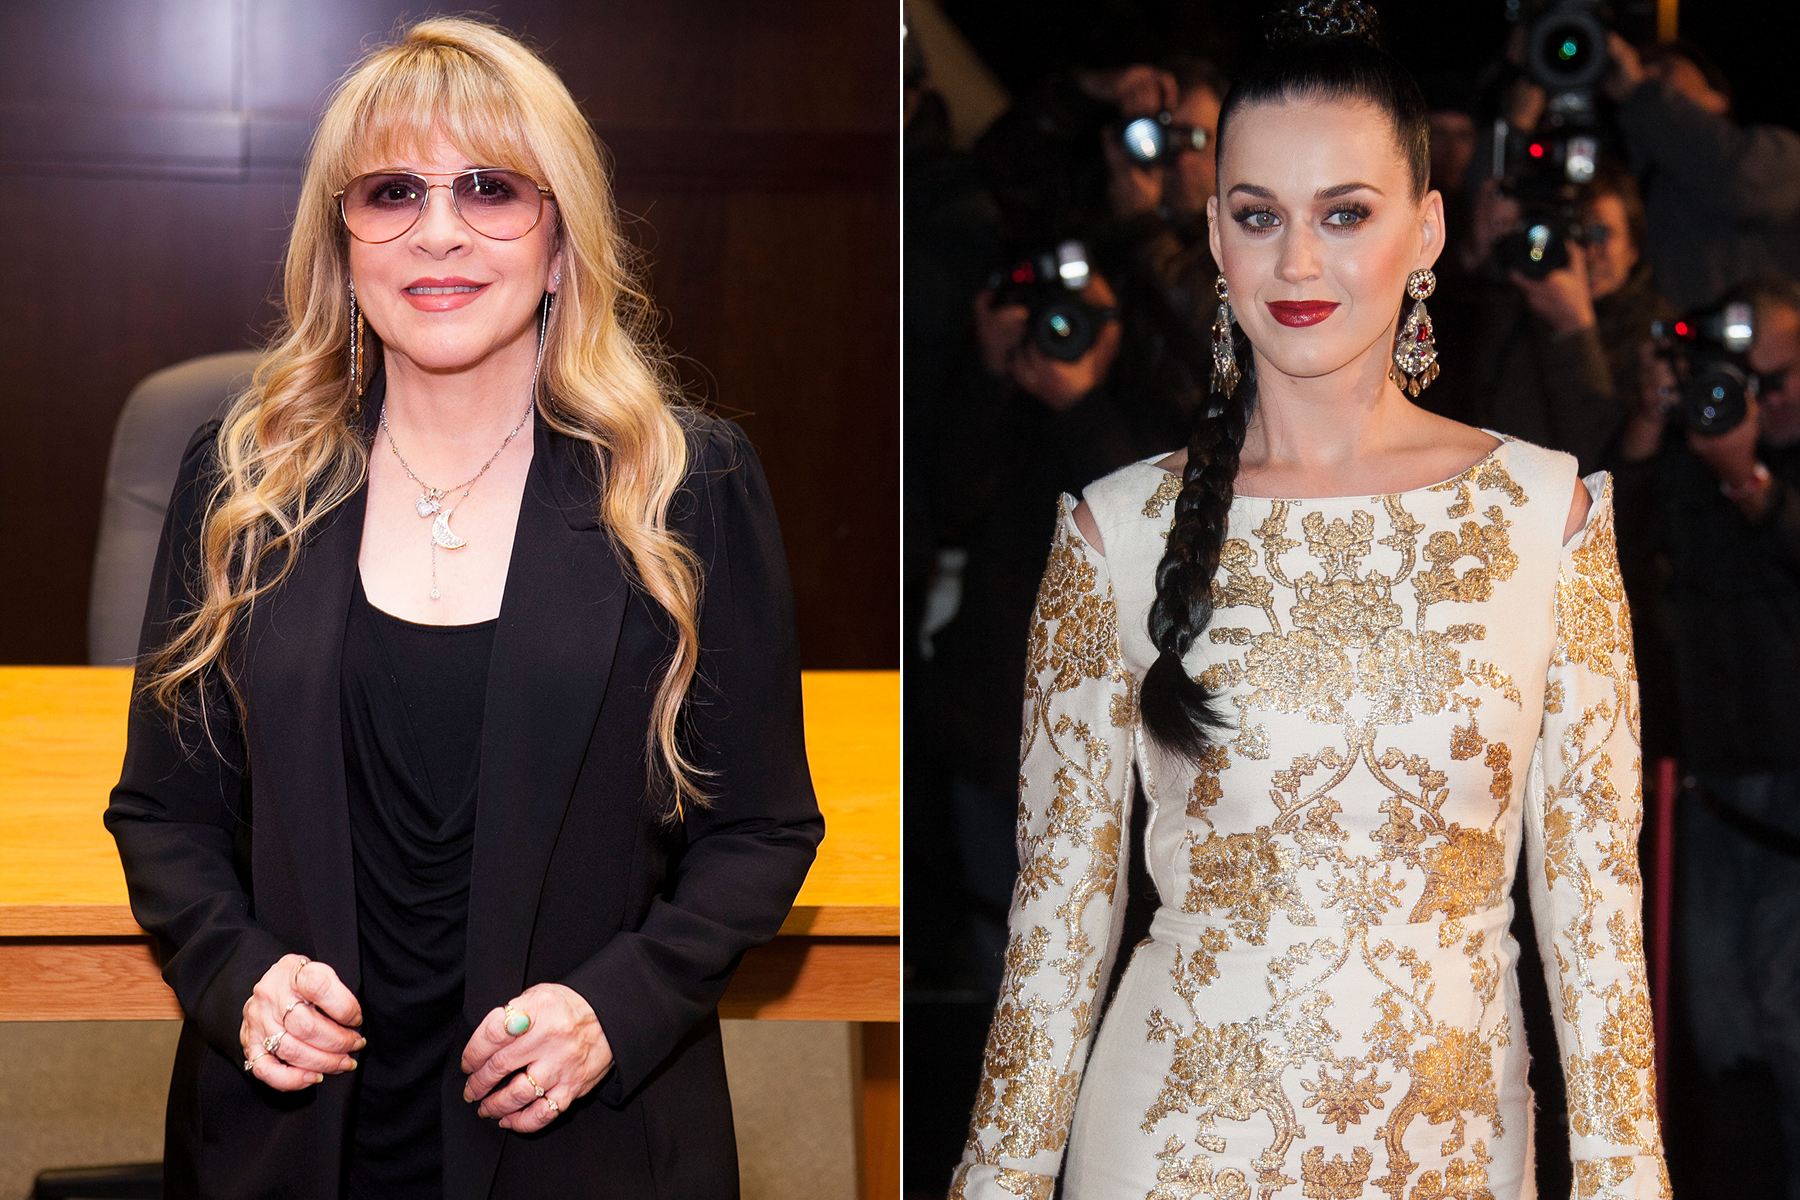 Stevie Nicks Advises Katy Perry on Her Pop Rivals